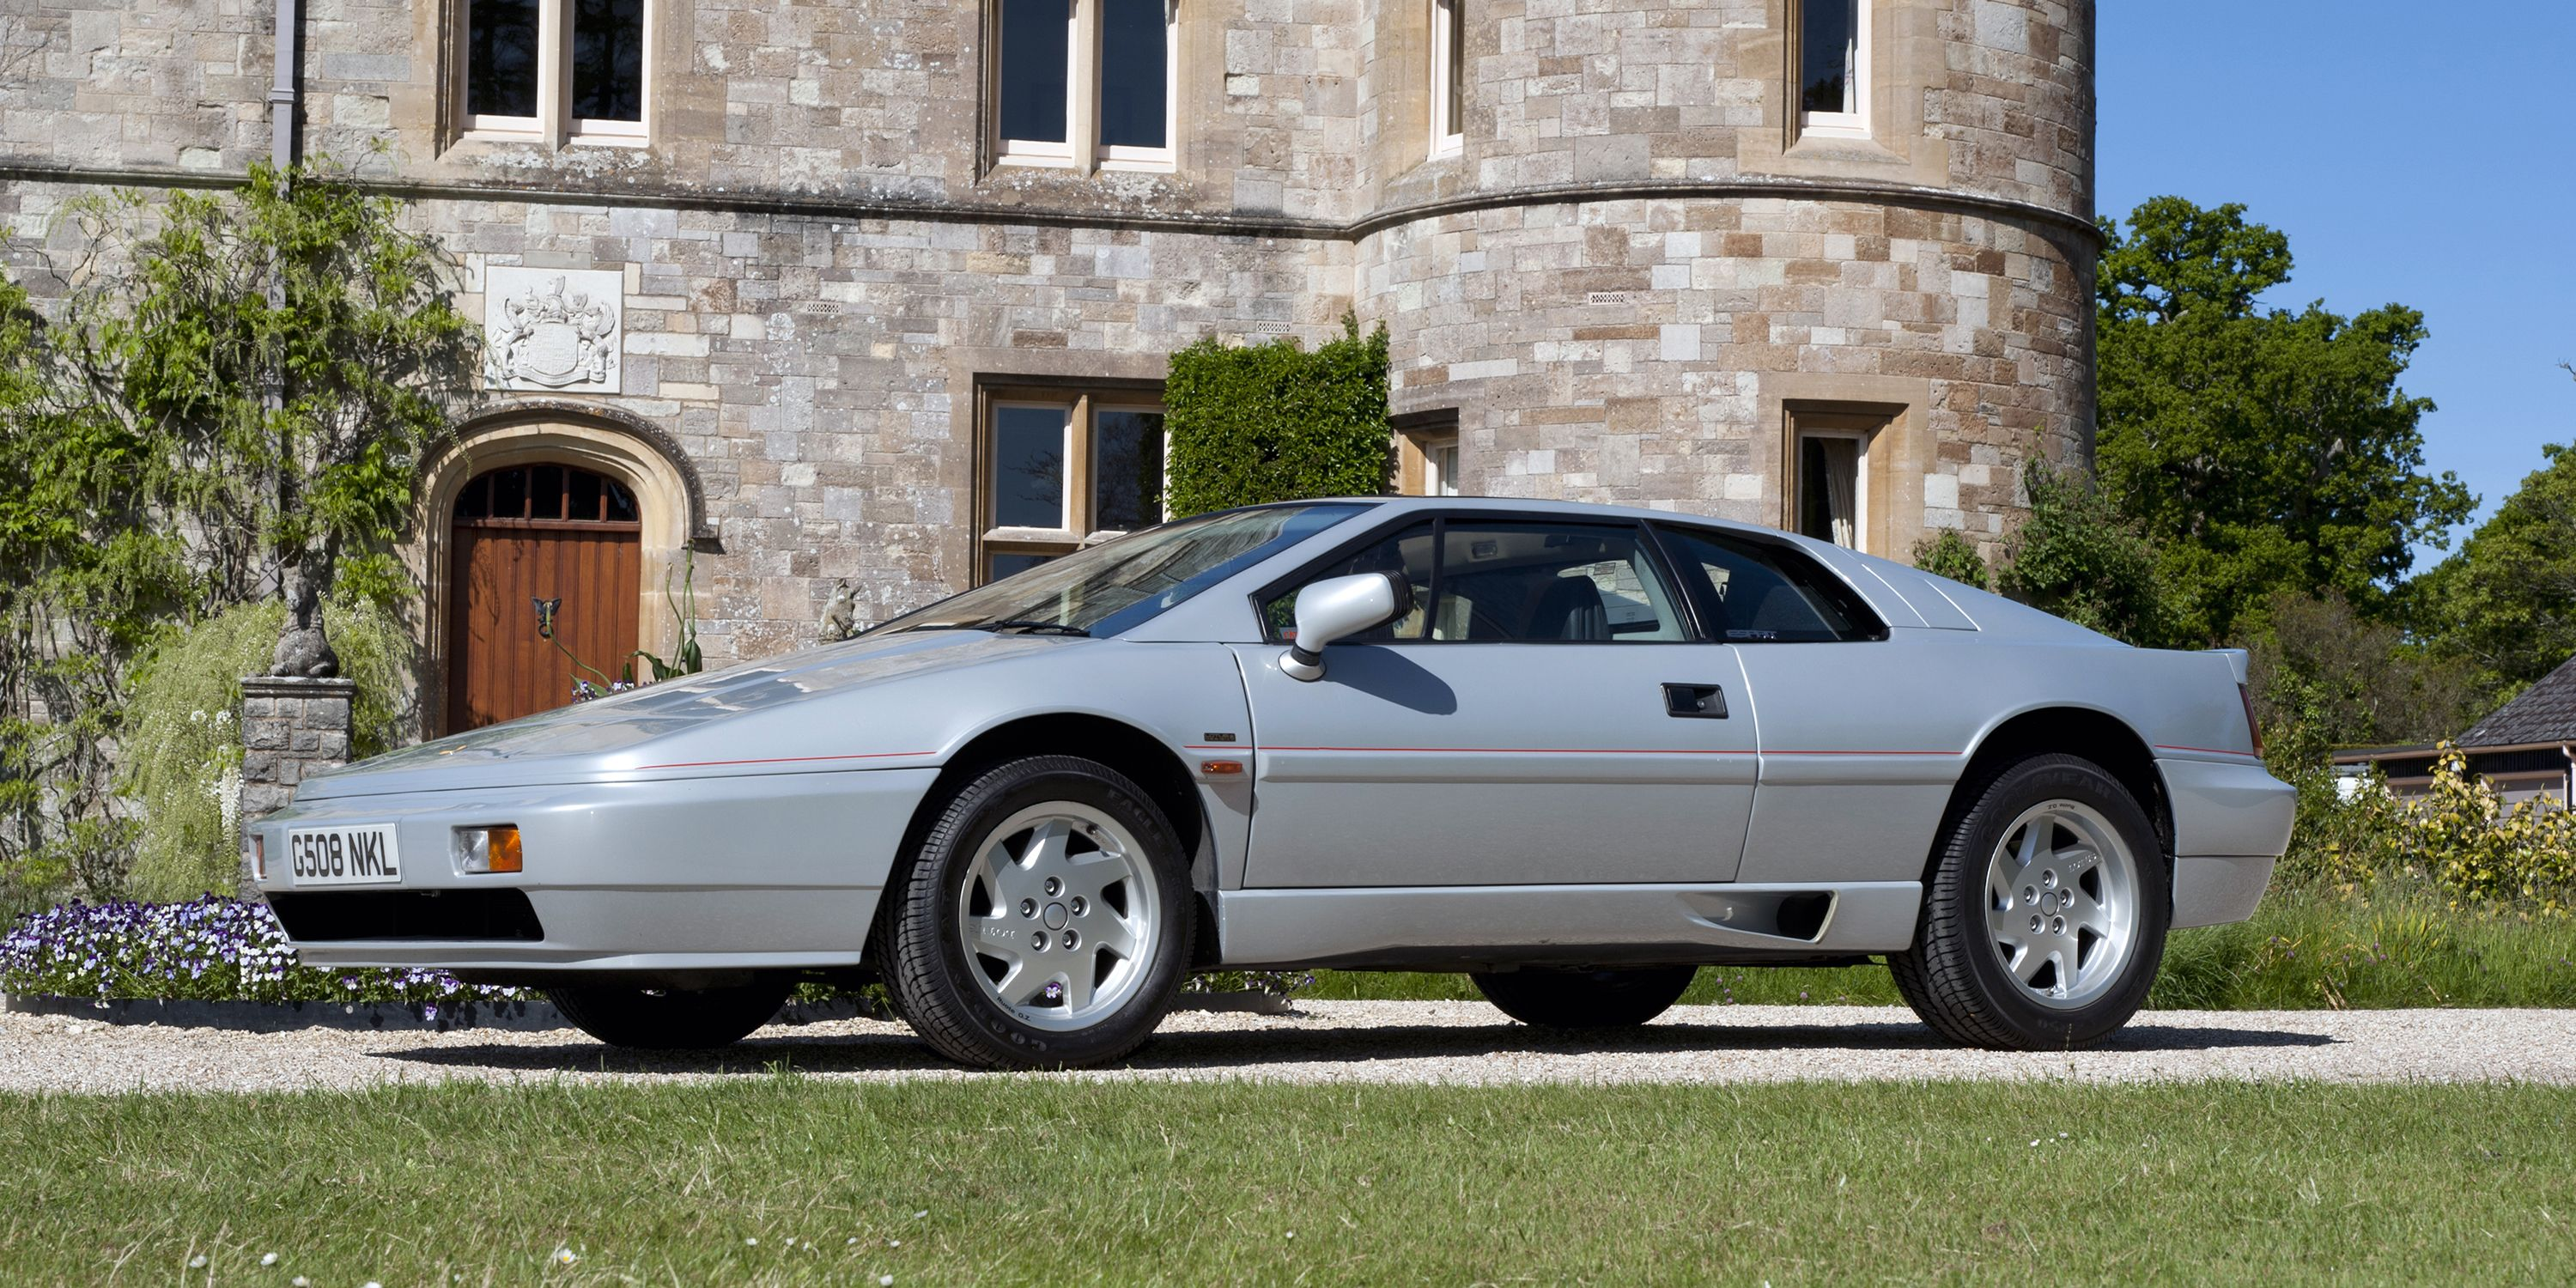 13 Best Cheap Mid-Engine Sports Cars - Affordable Mid-Engine